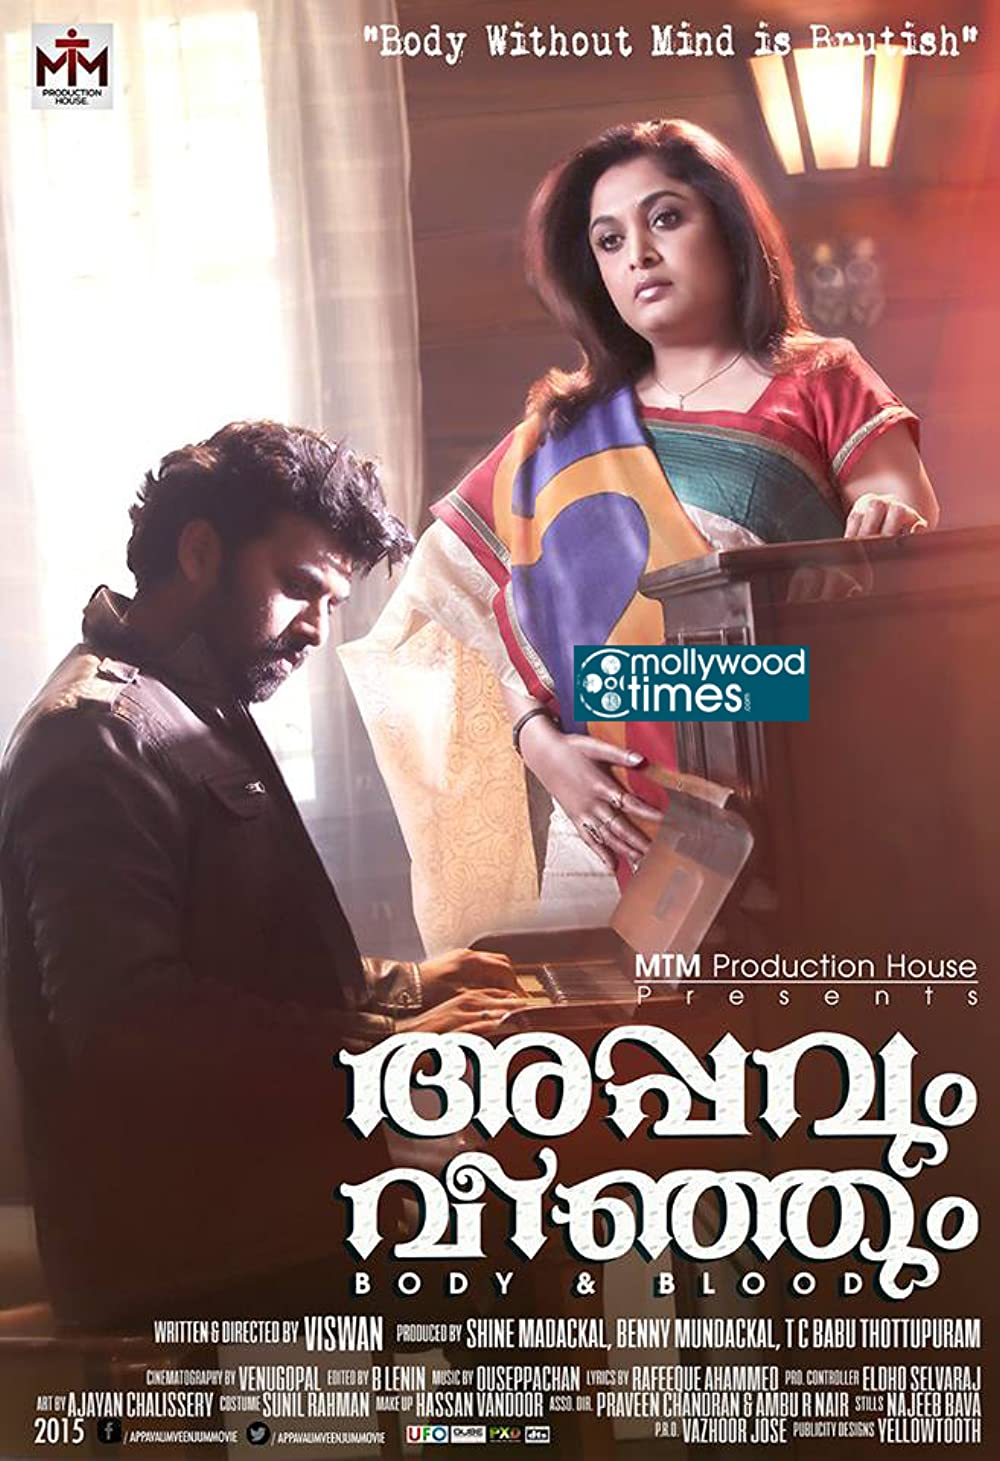 Jism Aur Khoon (Appavum Veenjum) 2021 Hindi Dubbed 1080p HDRip 1.33GB Download